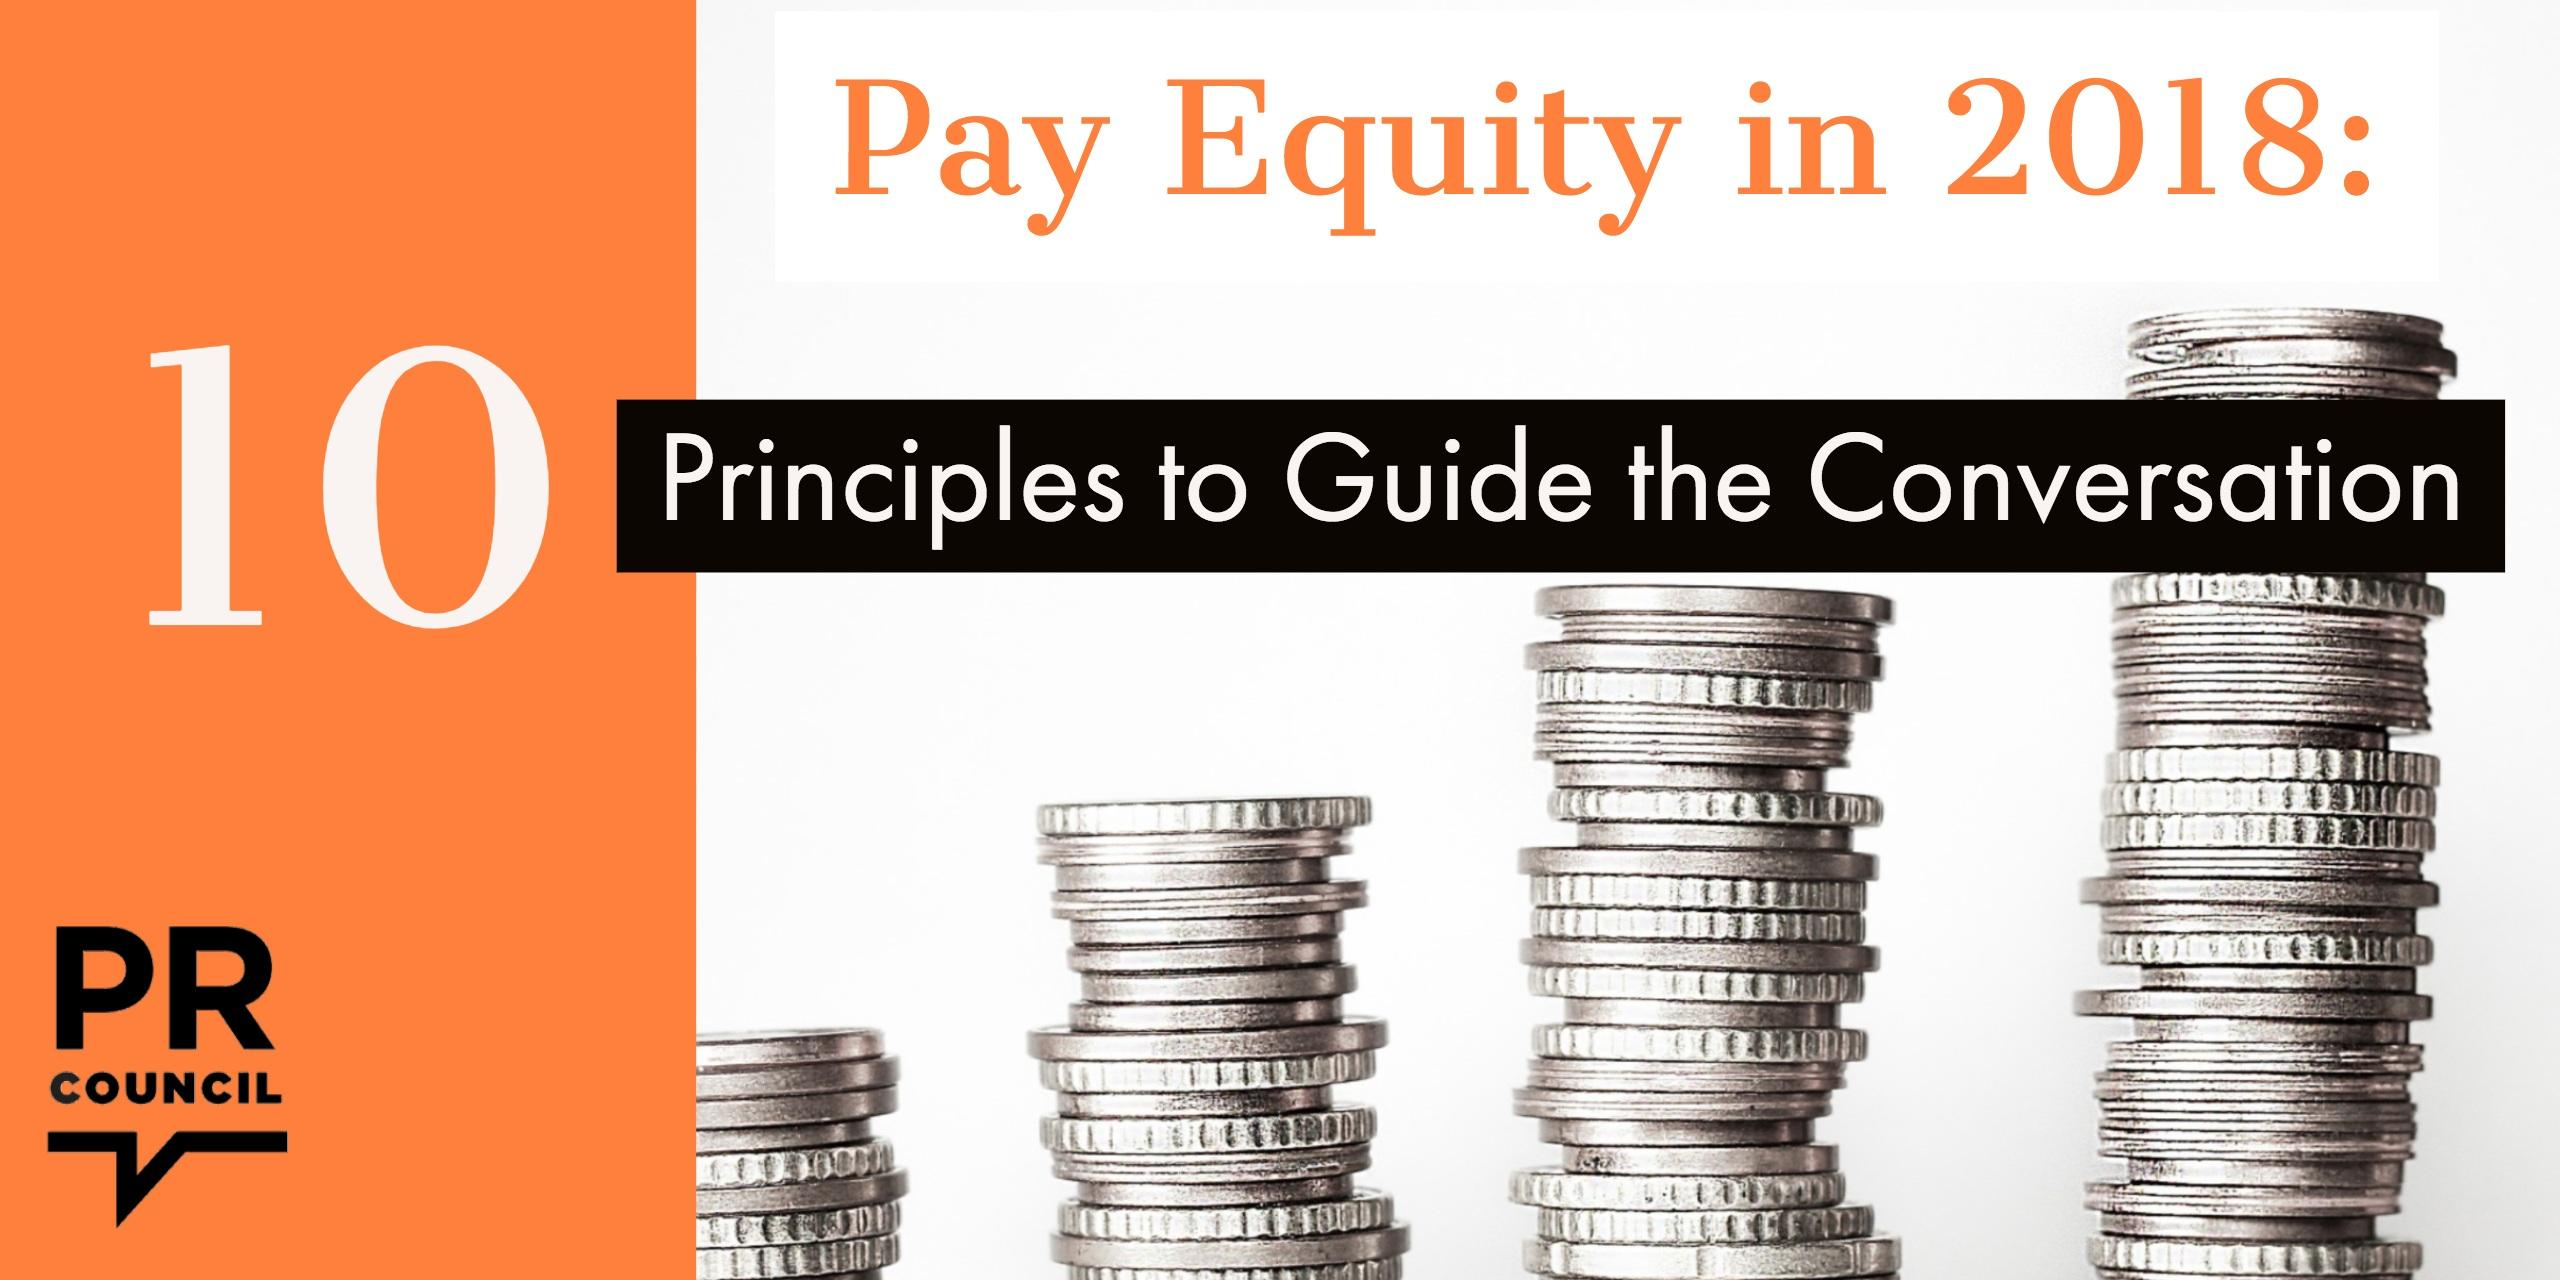 Pay Equity in 2018: Principles to Guide the Conversation